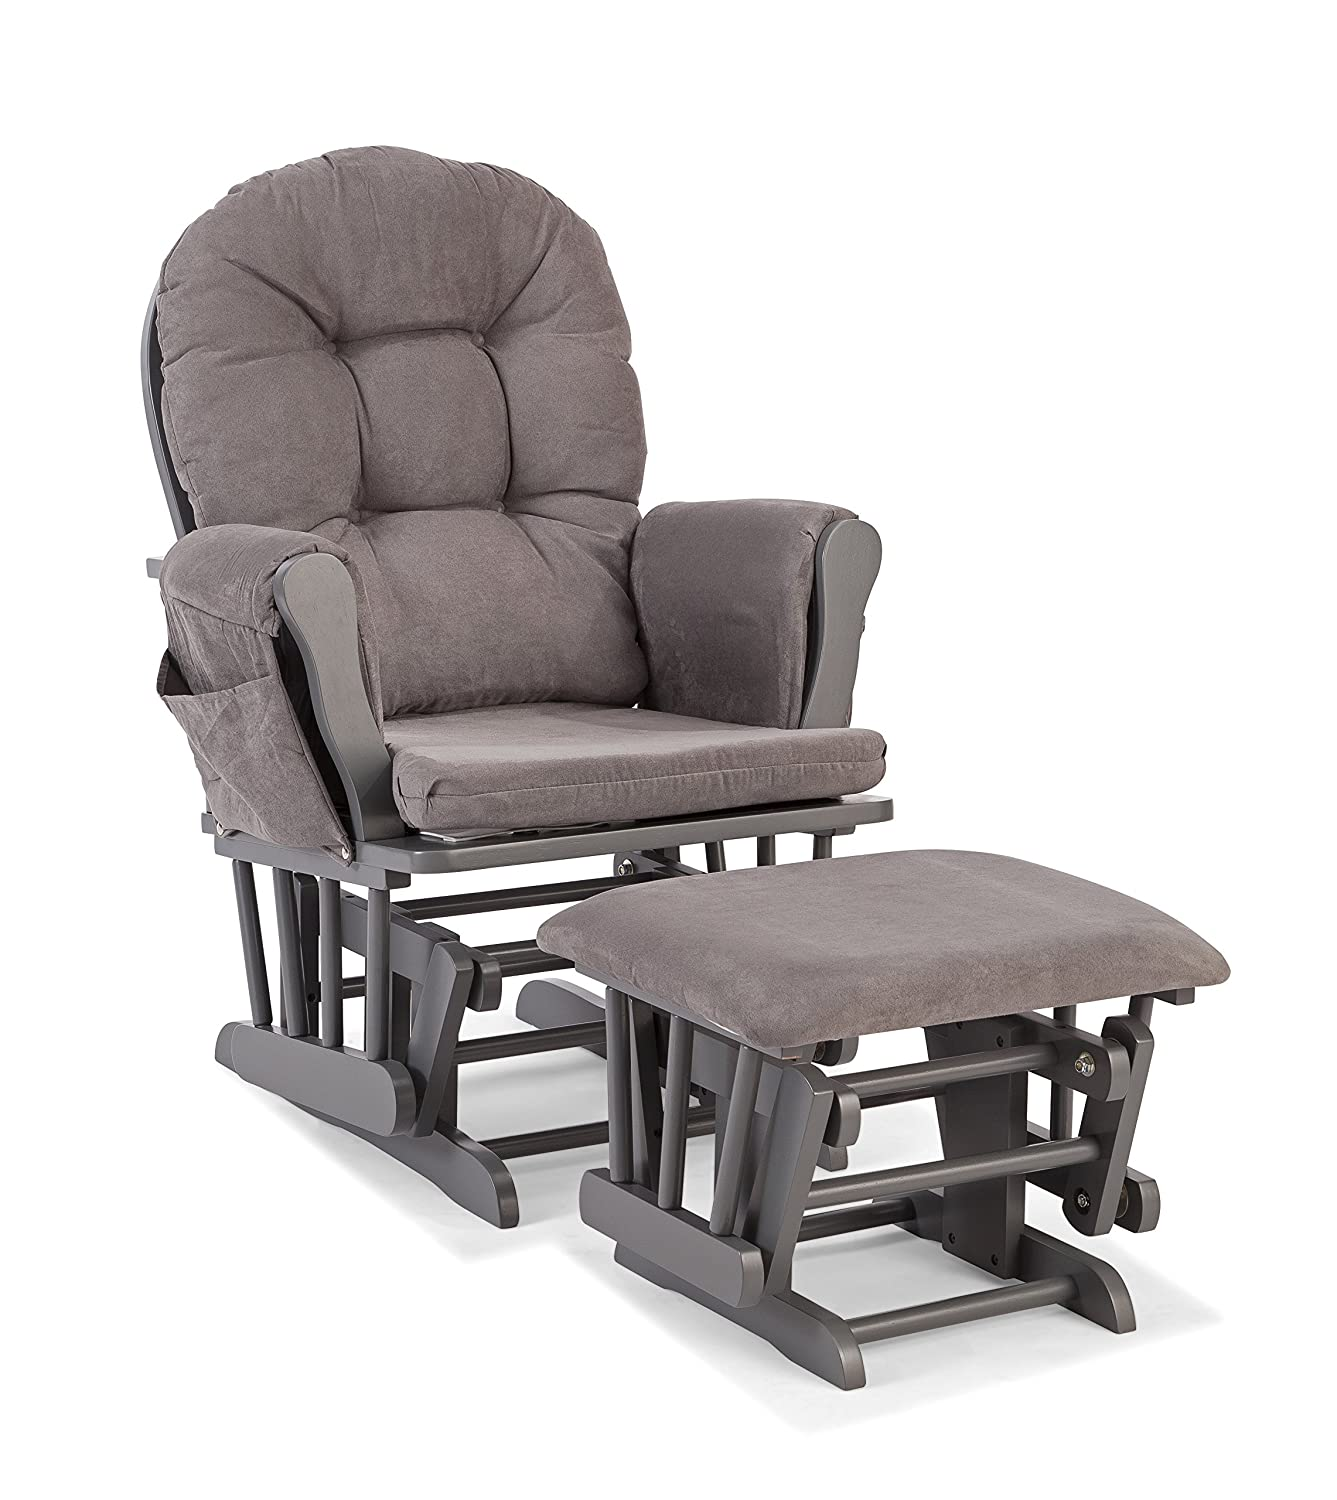 Storkcraft Hoop Custom Glider and Ottoman, Gray/Gray 06550-60G